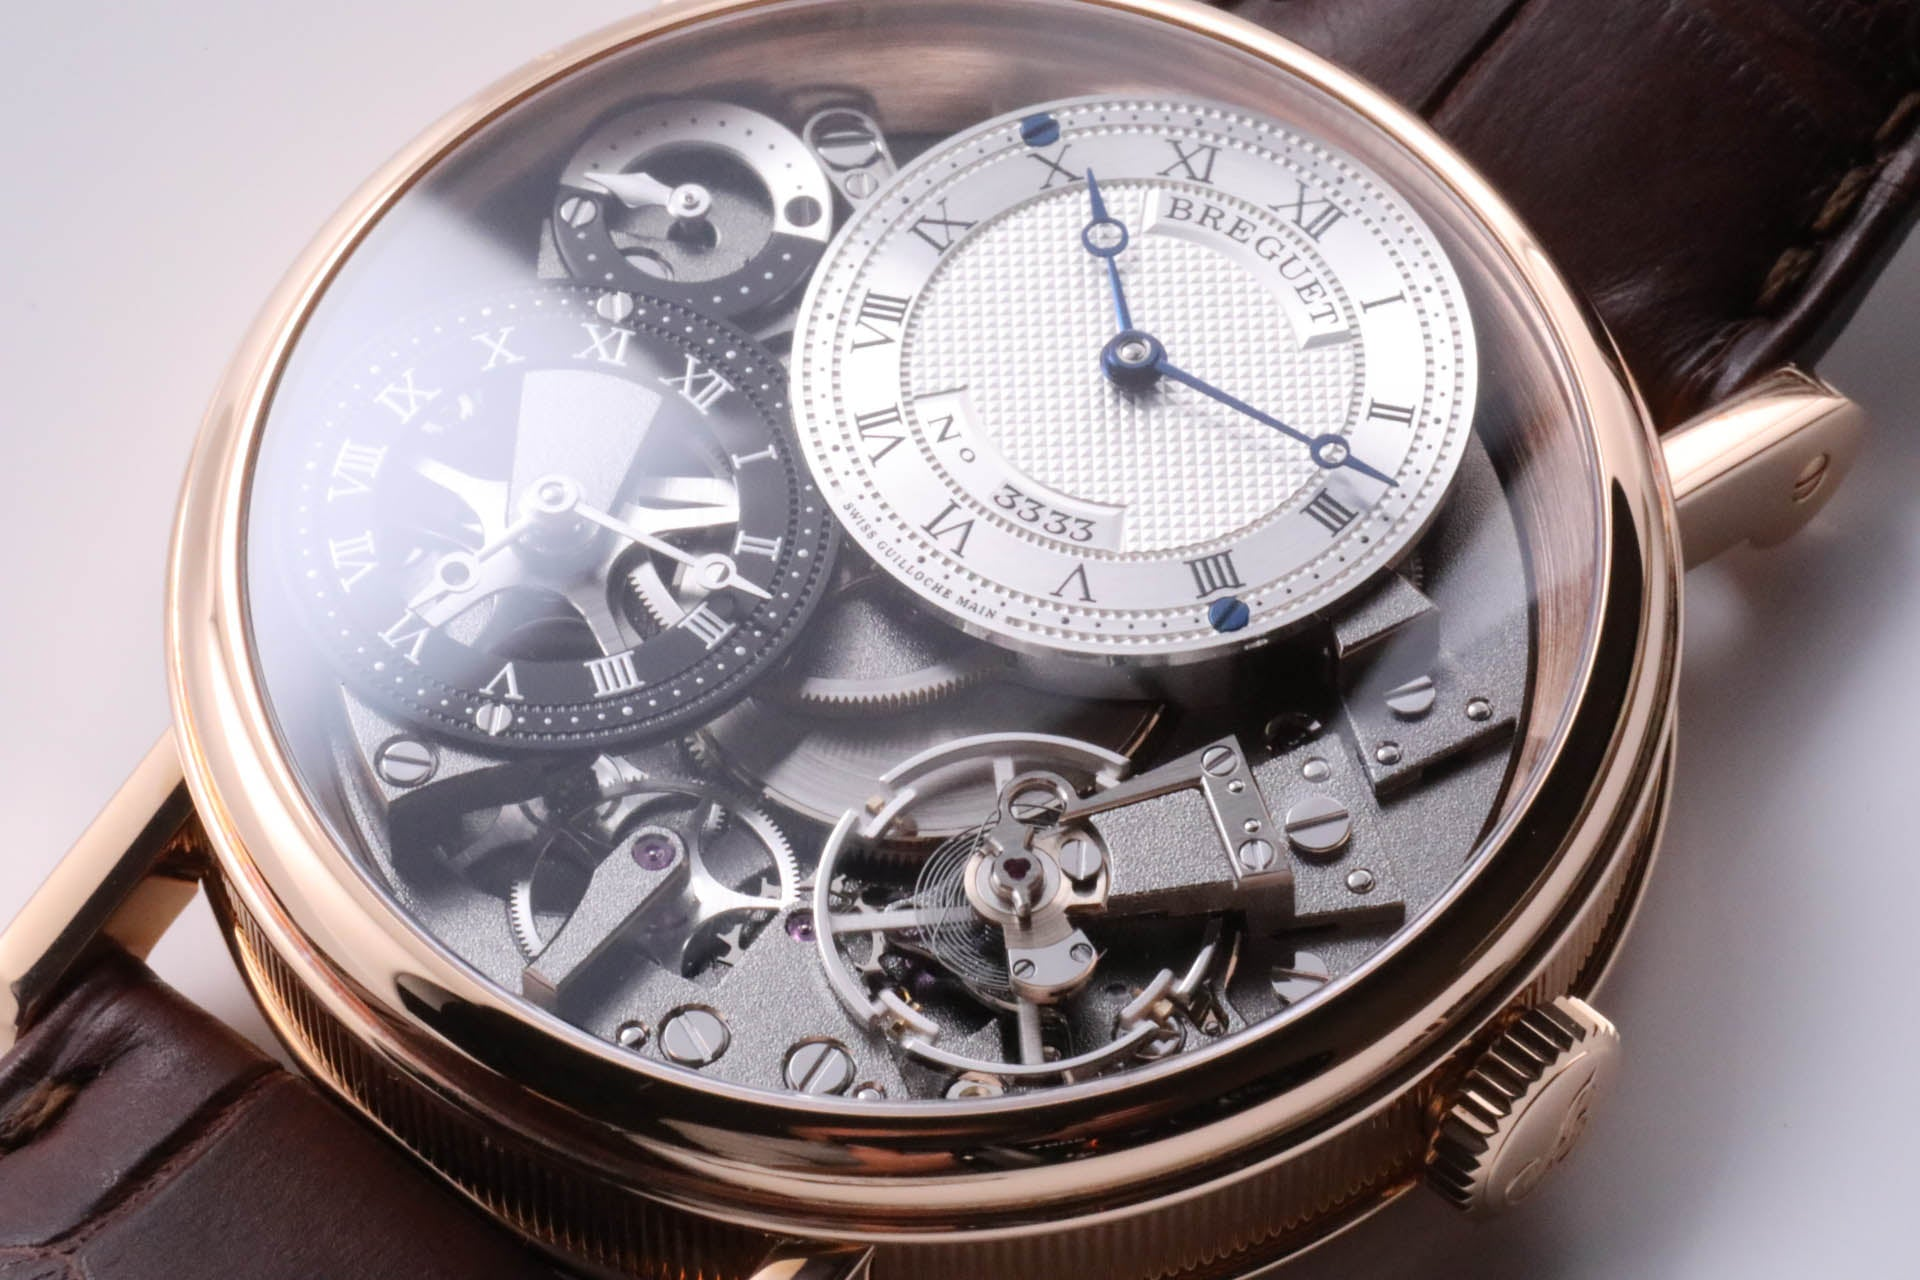 Breguet Tradition GMT Manual Wind Rose Gold